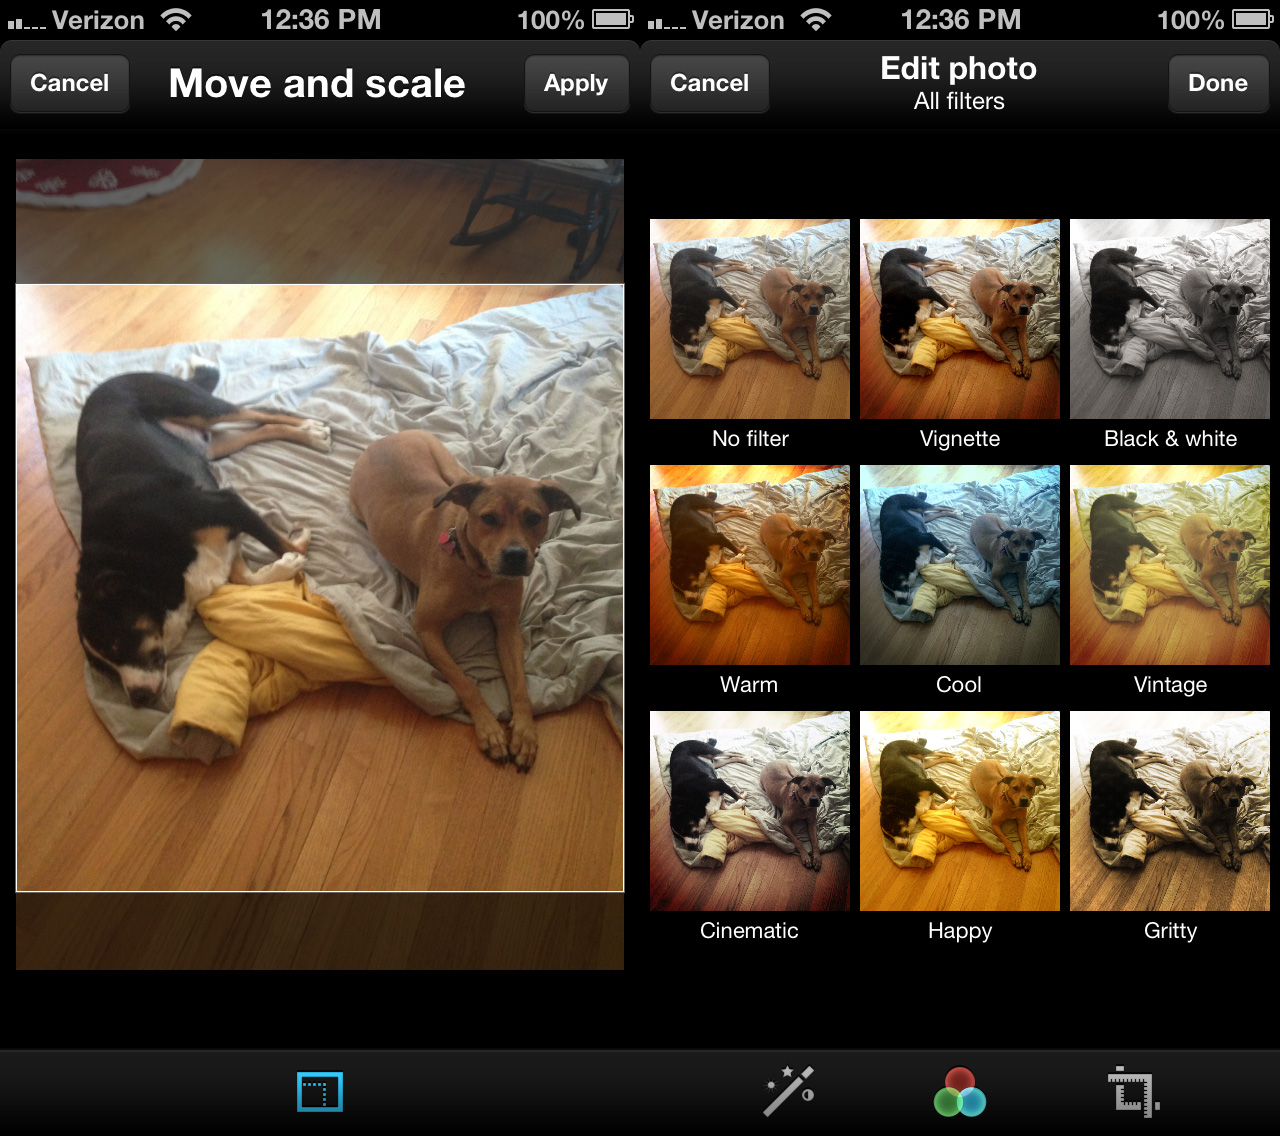 Twitter has a selection of eight photo filters of dubious quality.